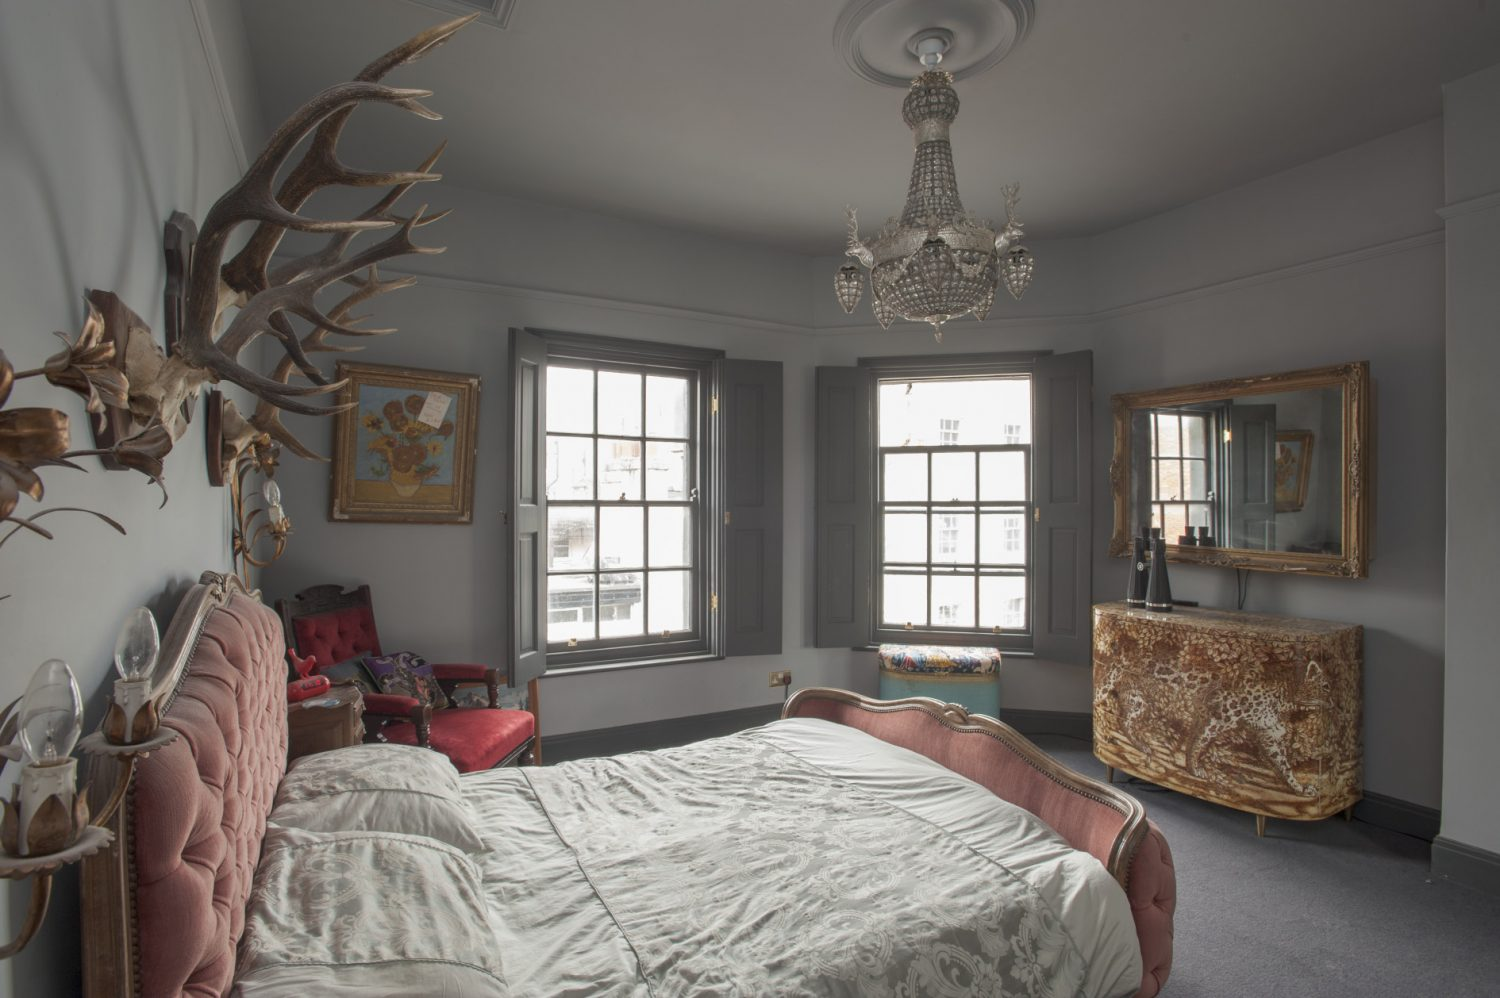 In the master bedroom the period French bed, framed by sets of antlers is upstaged by the superb, bow-fronted 1970s Fornasetti chest of drawers